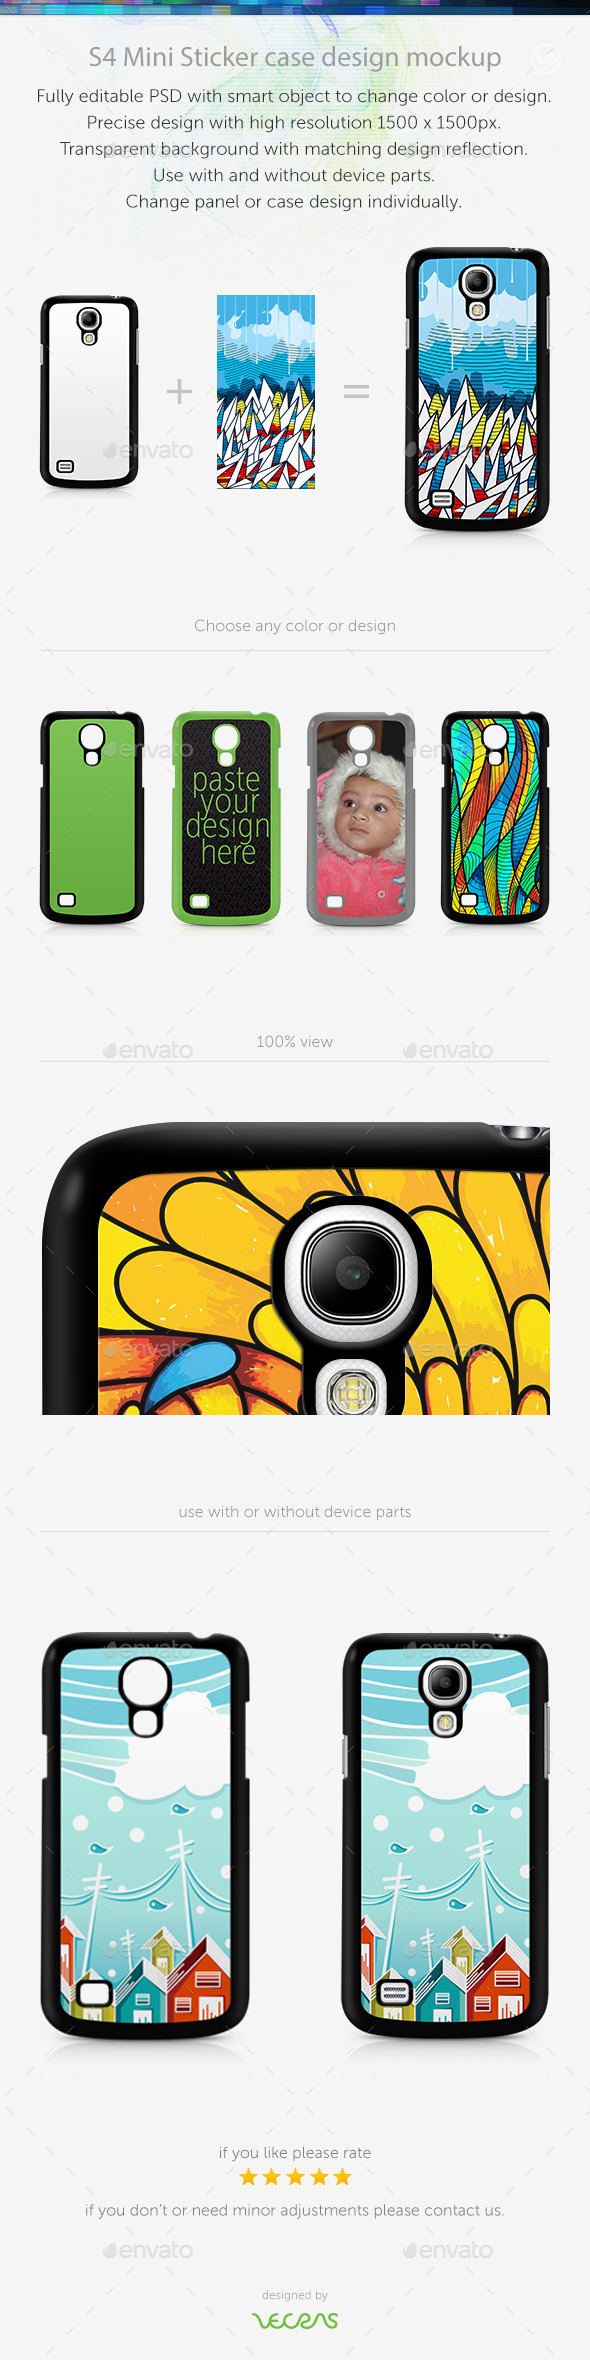 GraphicRiver S4 Mini Sticker Case Design Mockup 10401054